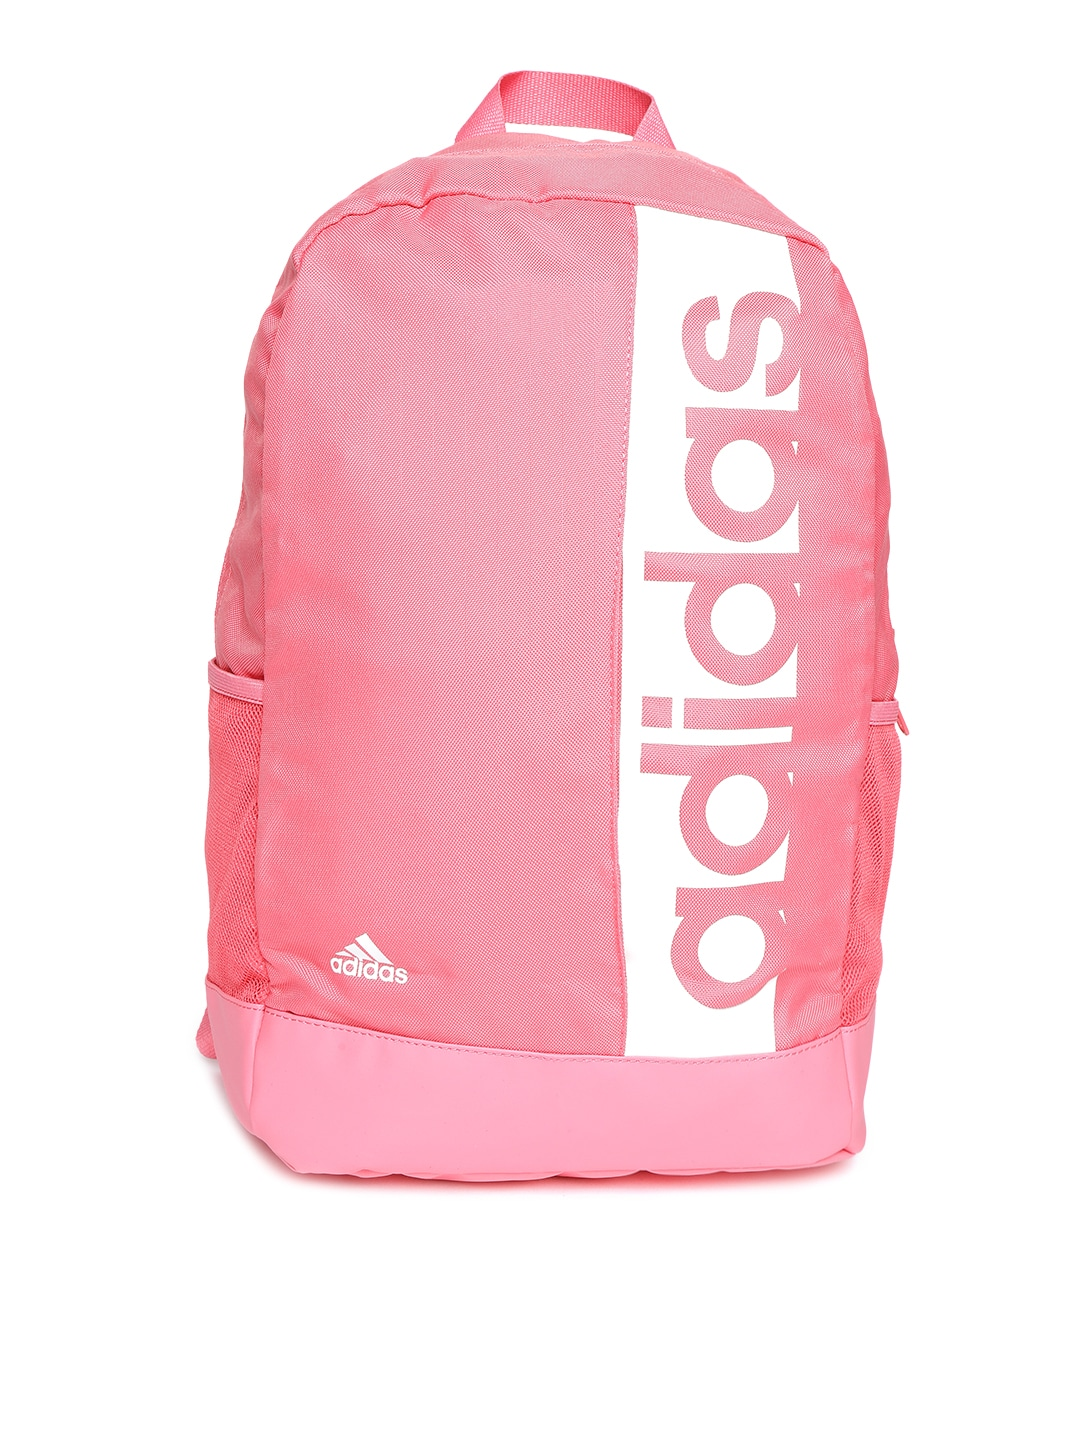 Pink Backpacks - Buy Pink Backpacks online in India 77eb169c6e45a